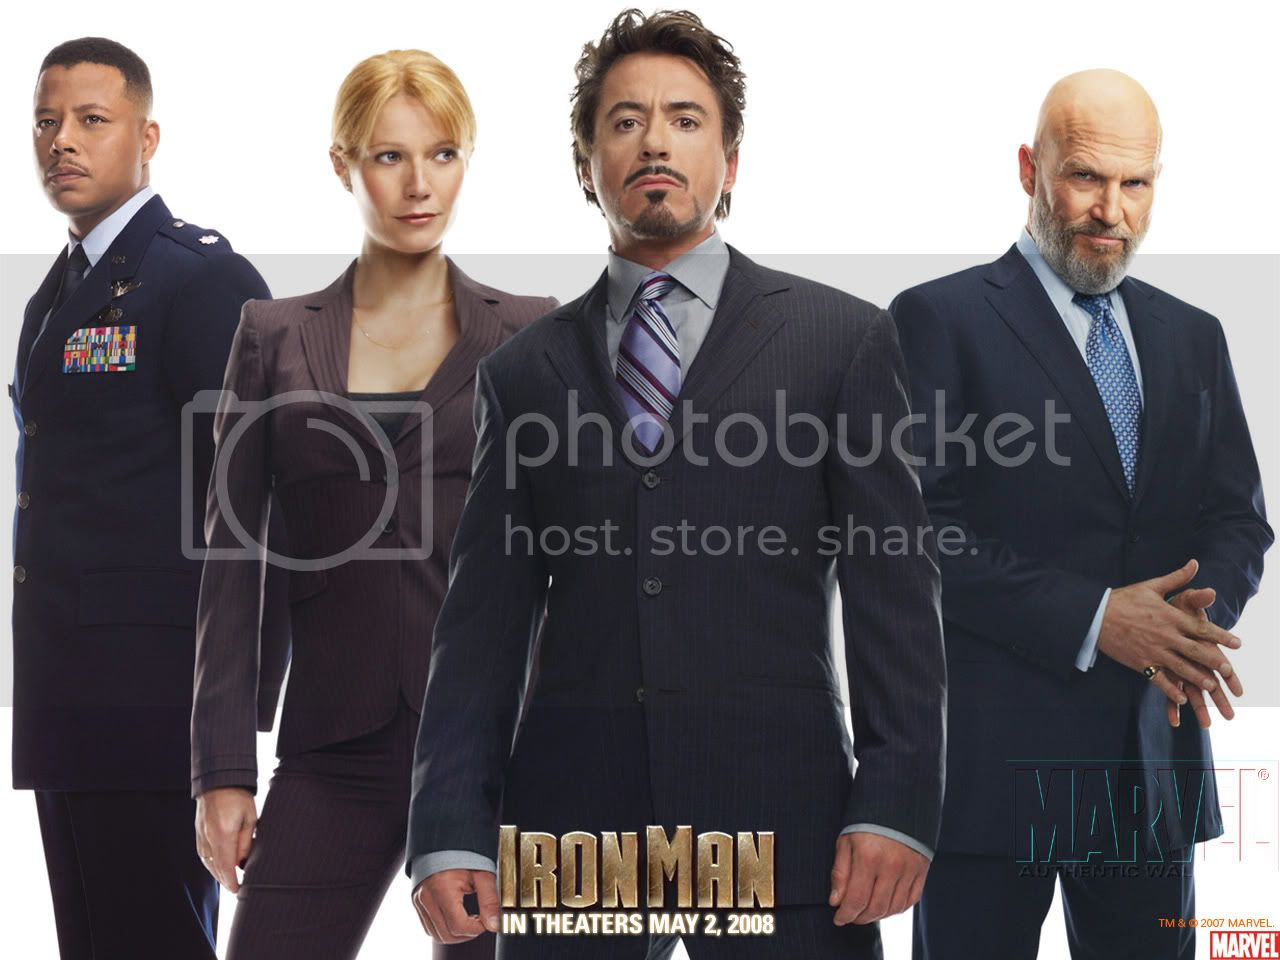 """The image """"http://i3.photobucket.com/albums/y82/j4ever/Iron-man/grp01_1280.jpg"""" cannot be displayed, because it contains errors."""